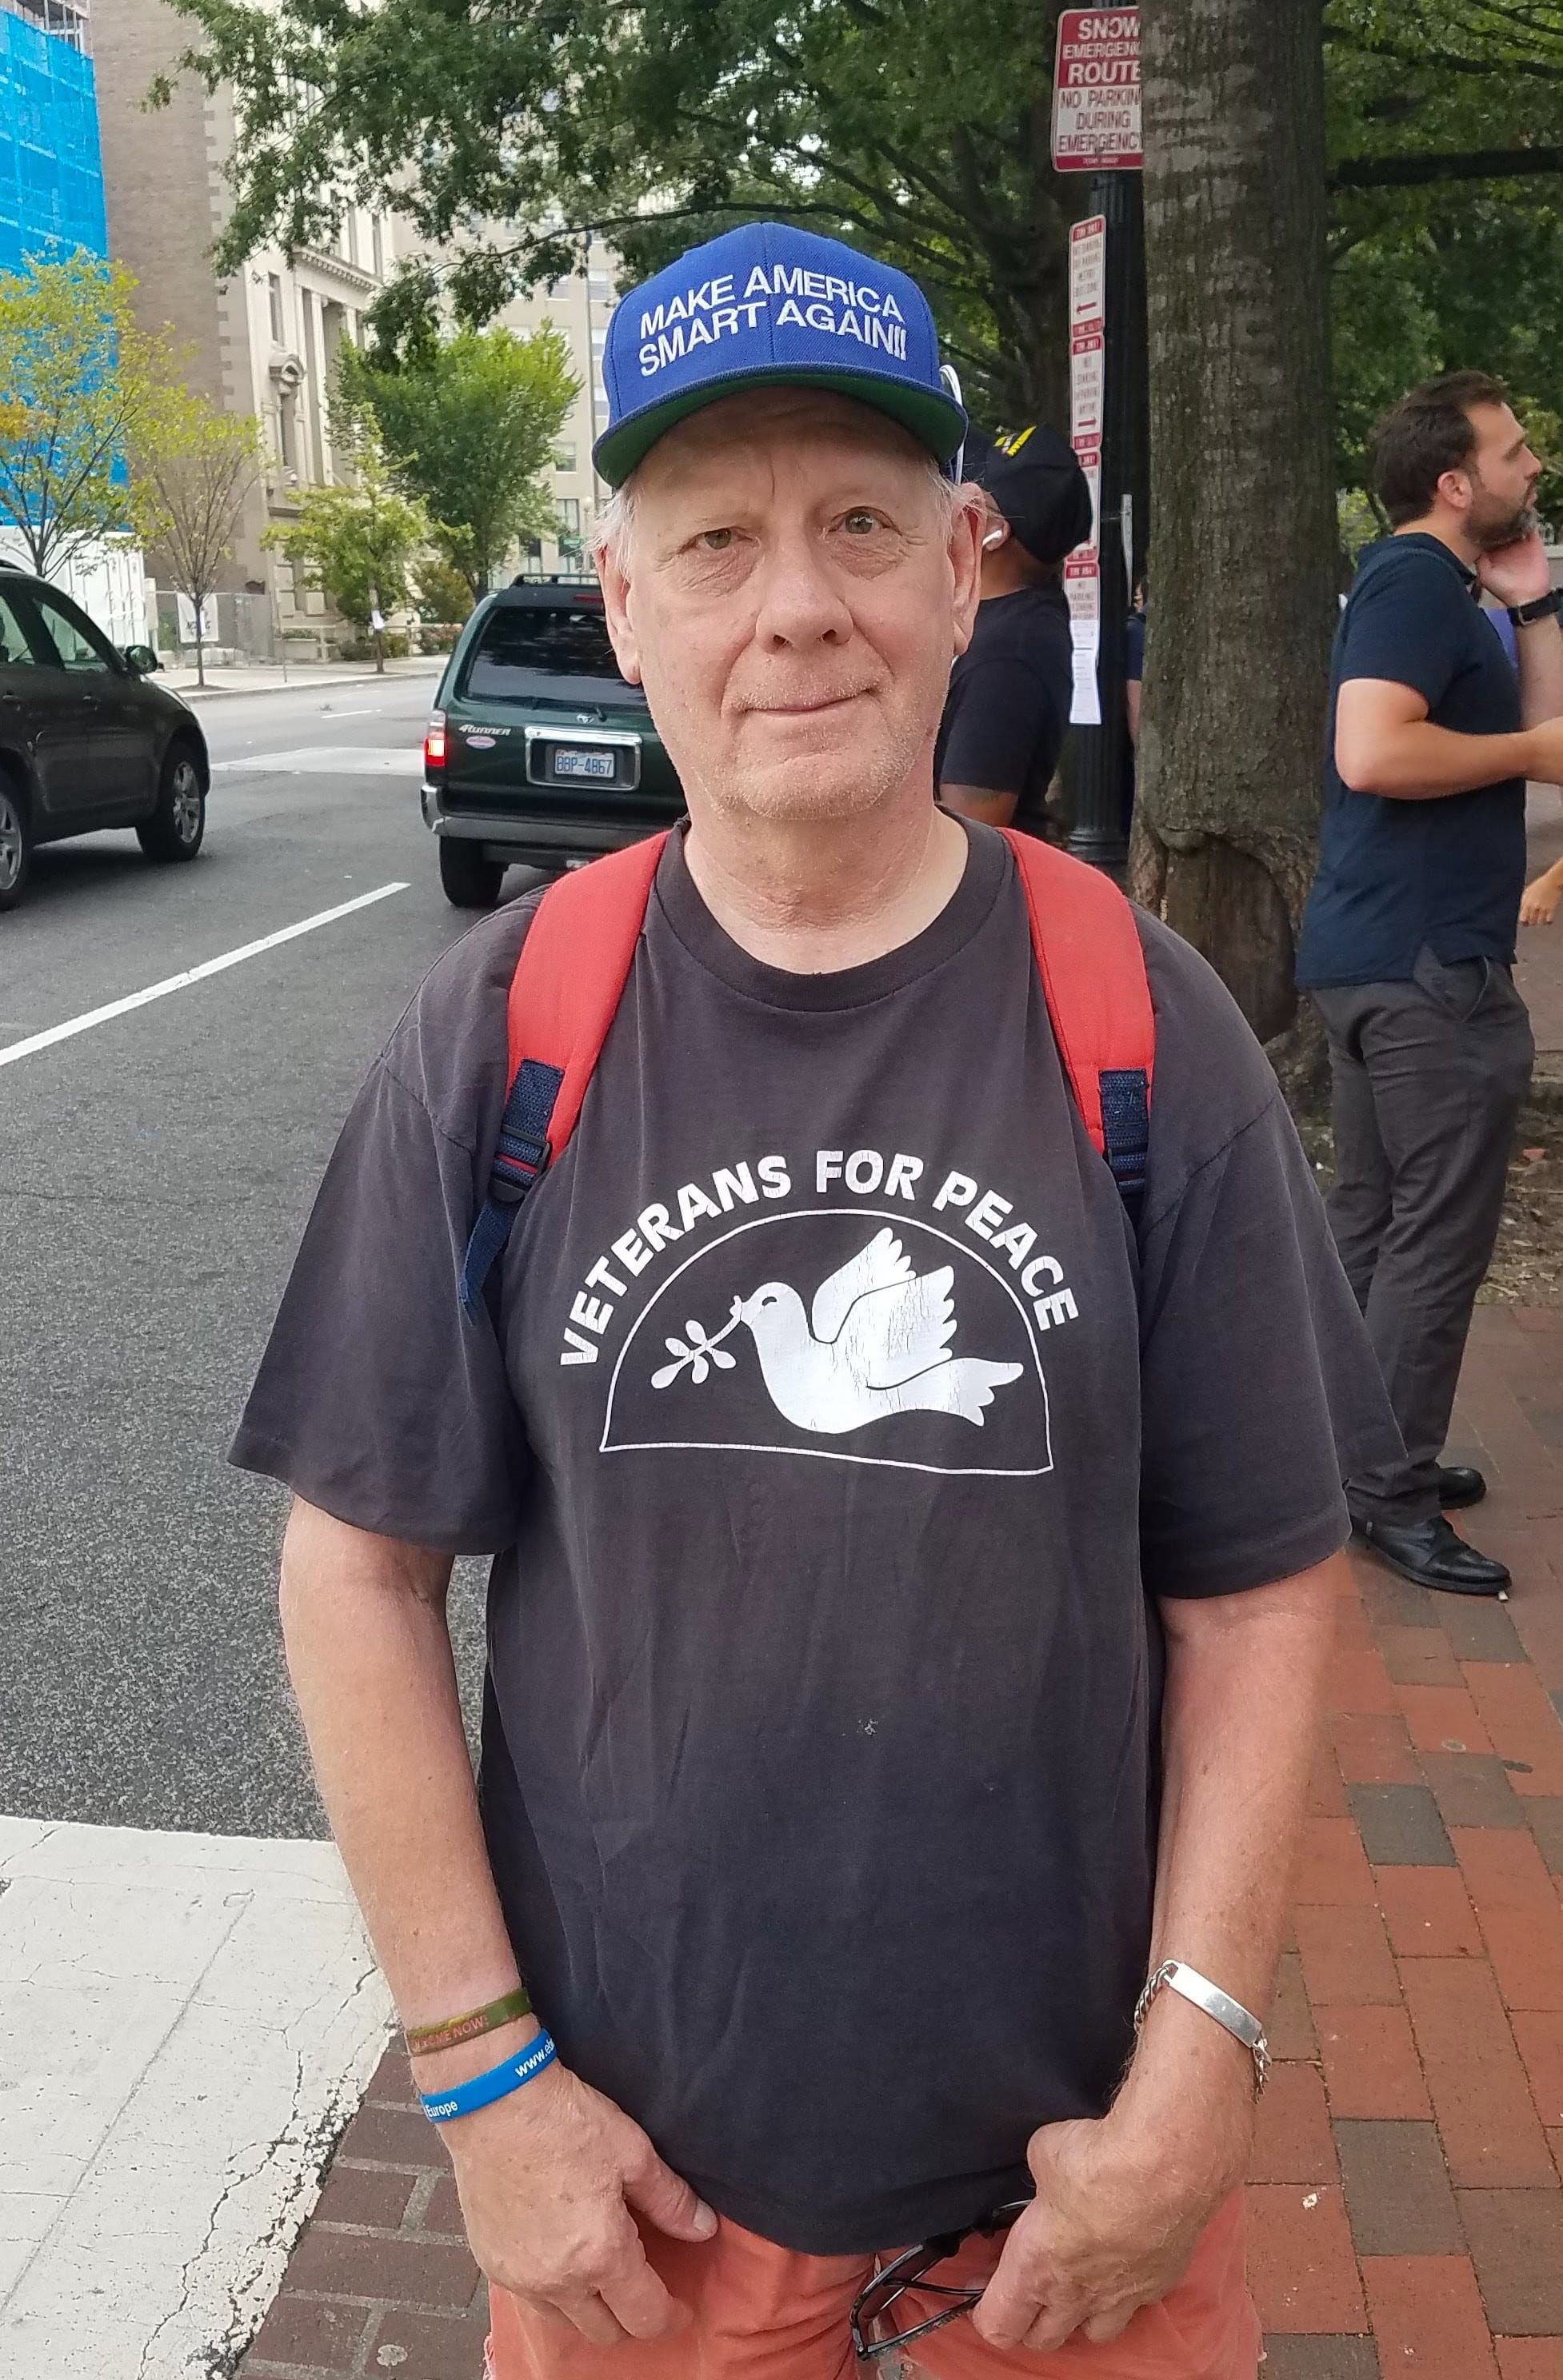 Image [Michael Marceau, President of Veterans for Peace, an Army combat veteran who was critically injured in Vietnam, came to protest at the Unite the Right 2 rally, Washington D.C., August 12, 2018][Photo: Alex Kish]